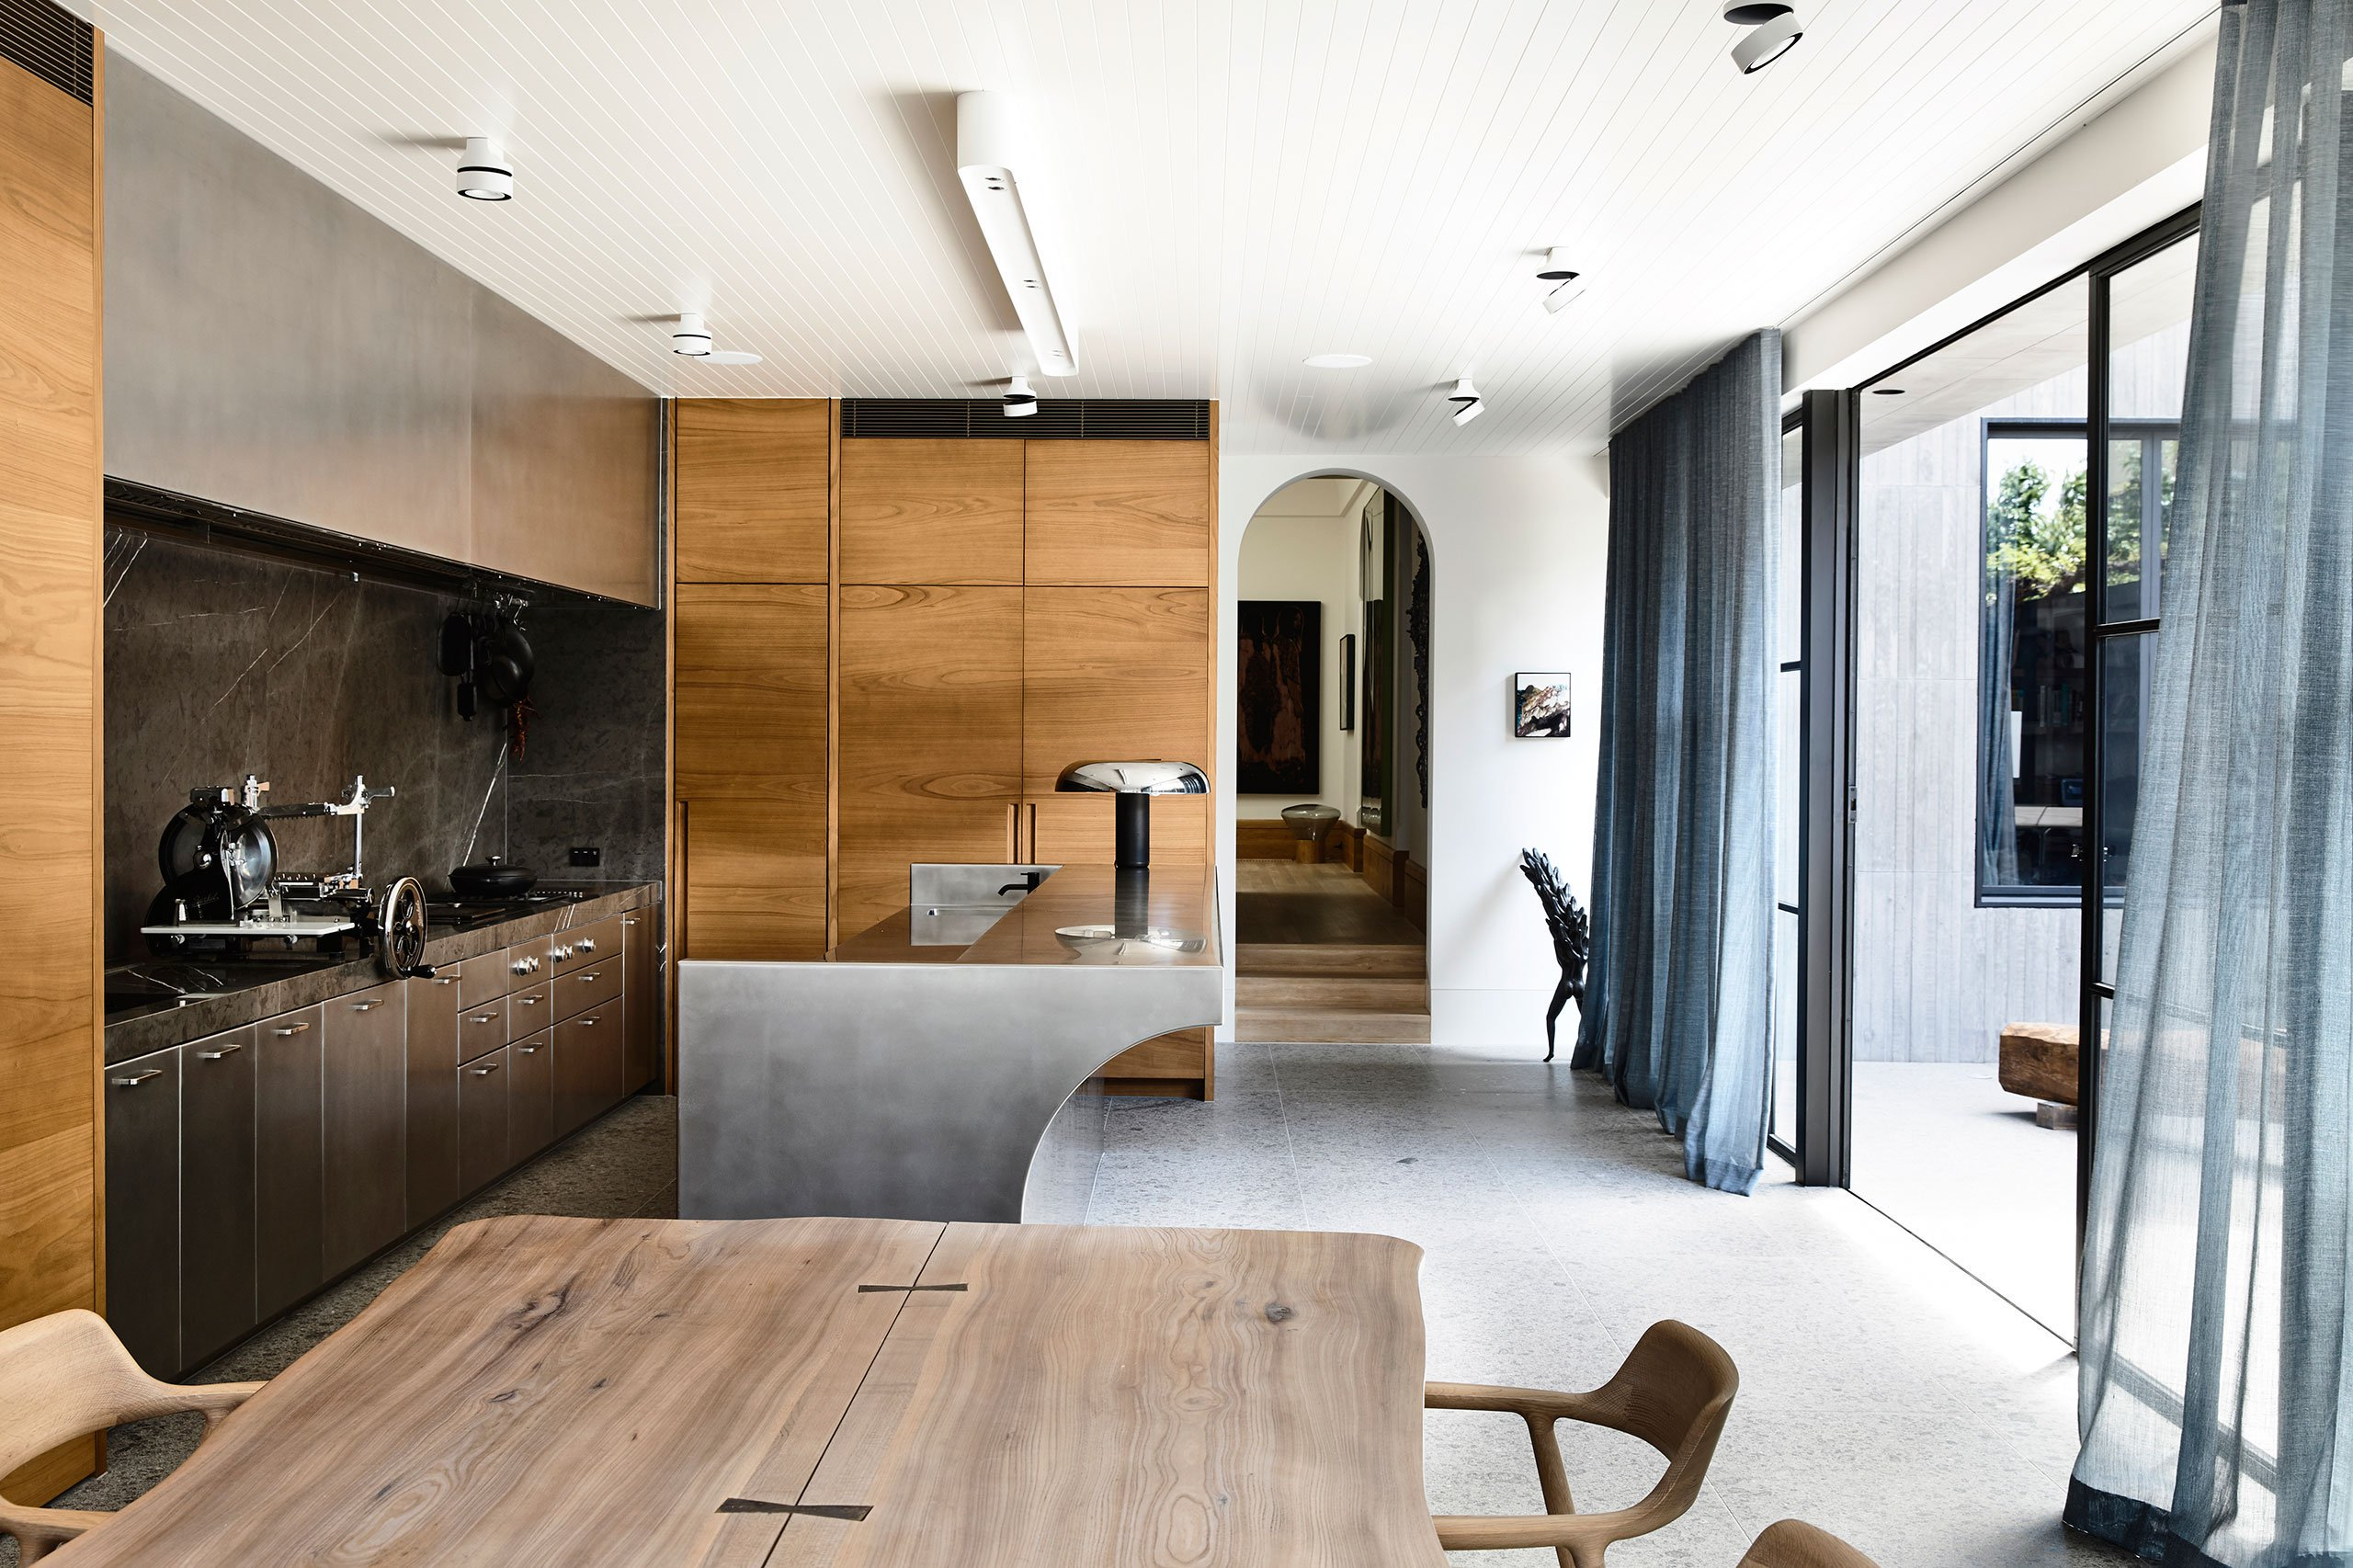 The kitchen is done with plywood and metal cabinets and a gorgeous metal kitchen island with curved lines, it may be opened to outdoors